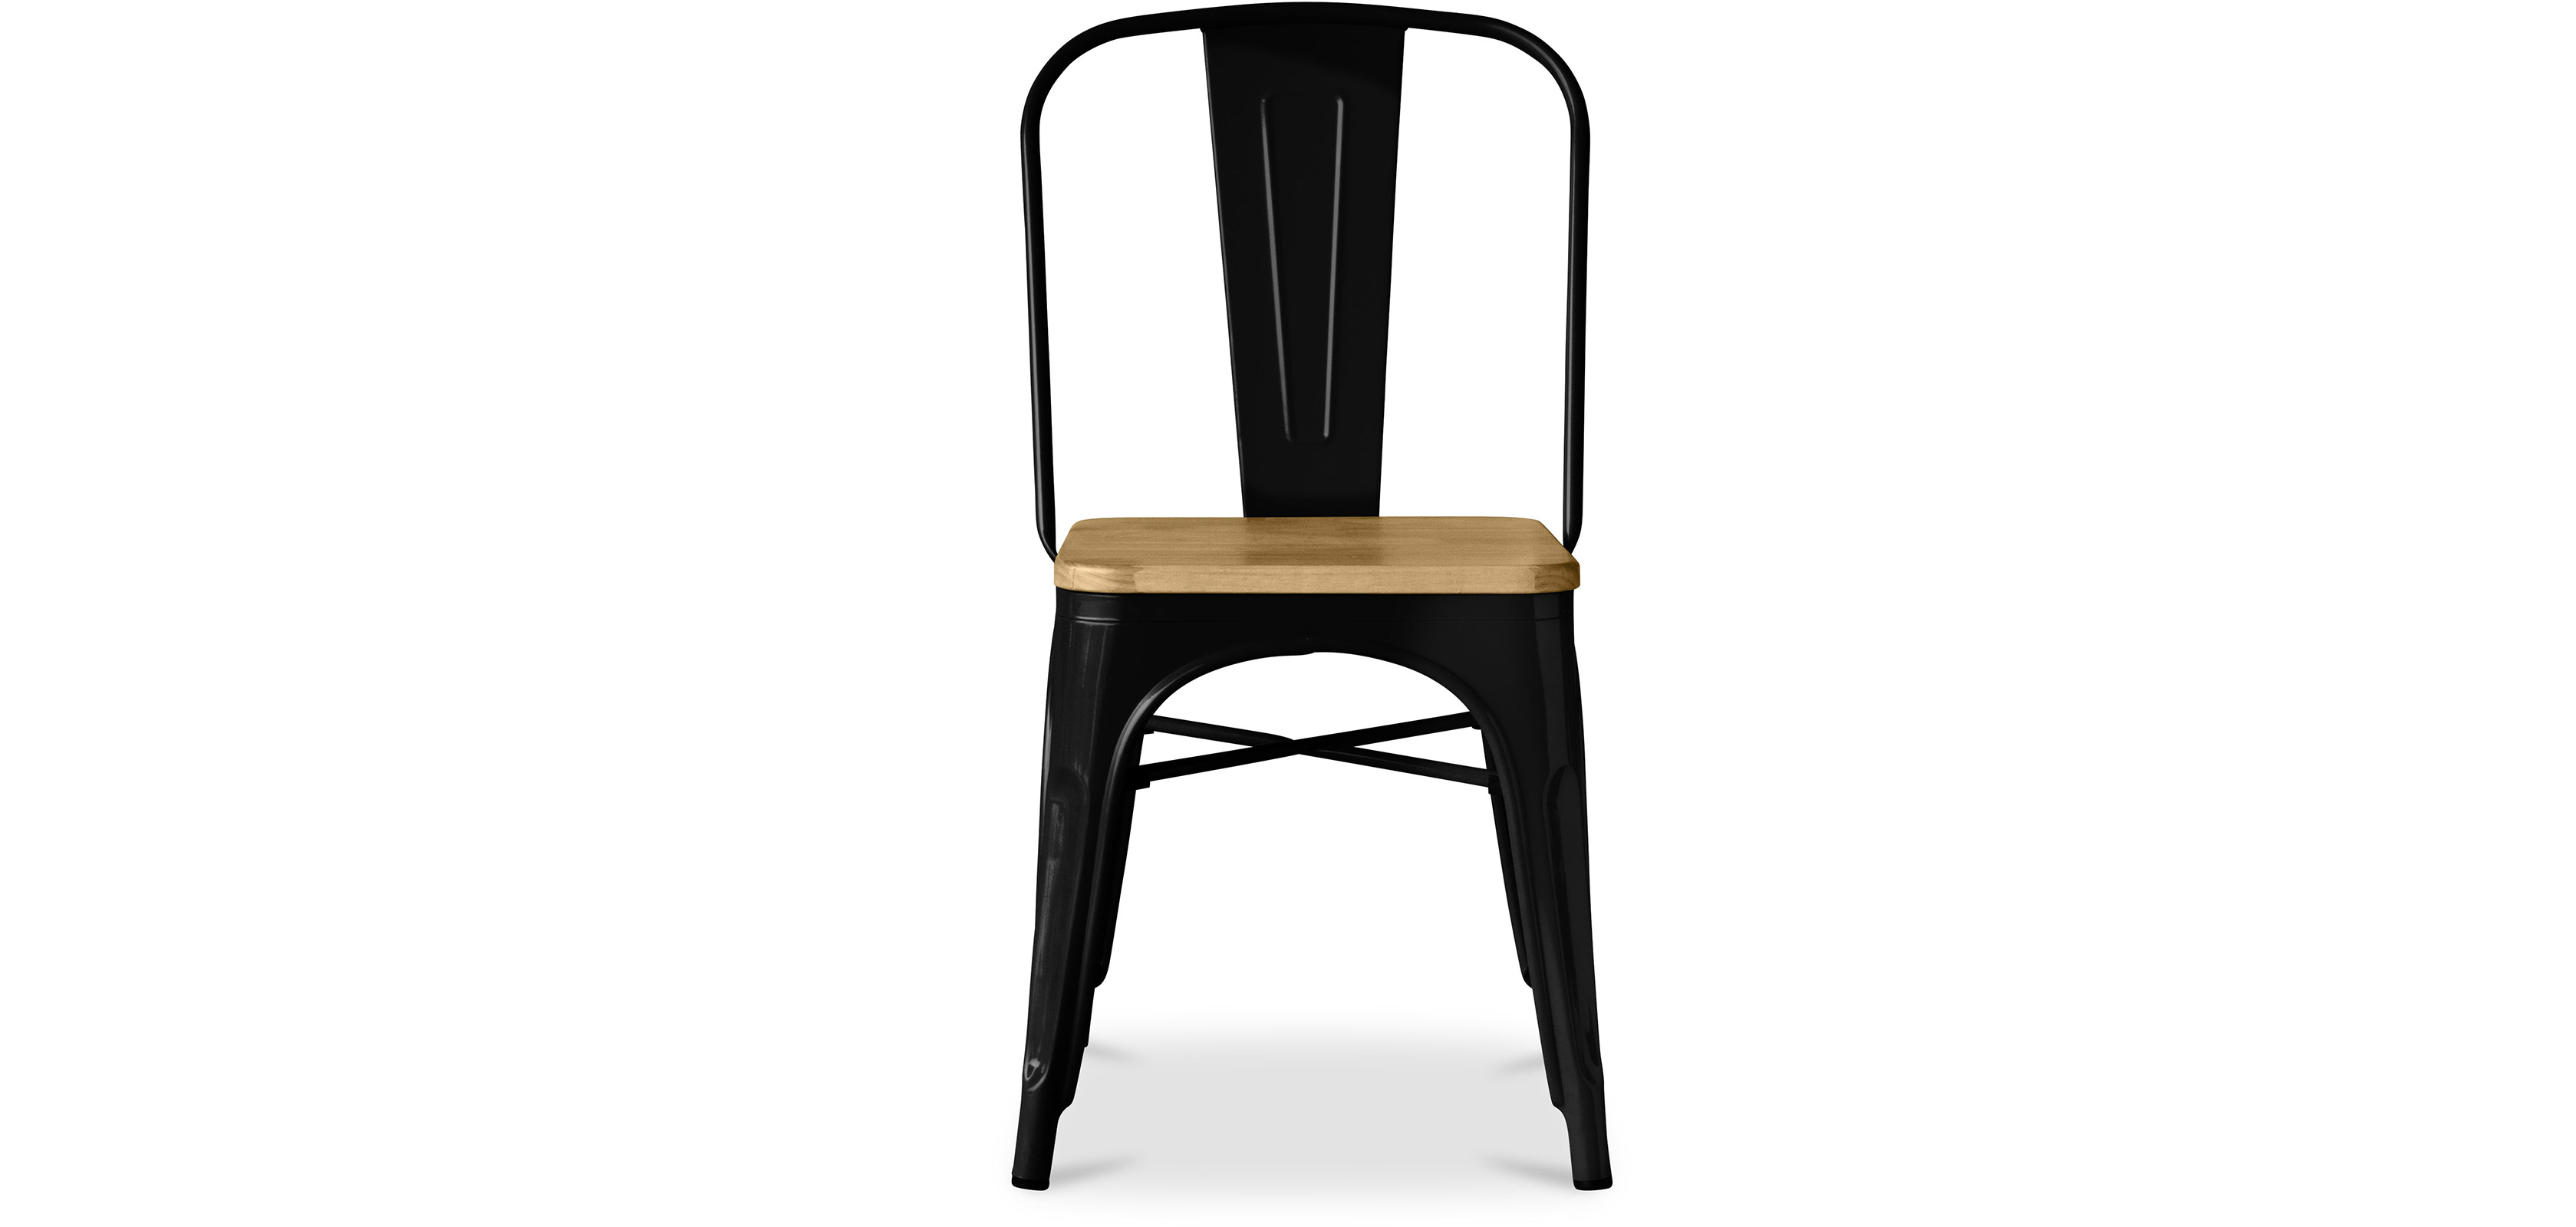 tolix chair square wooden seat xavier pauchard style metal dining chairs. Black Bedroom Furniture Sets. Home Design Ideas